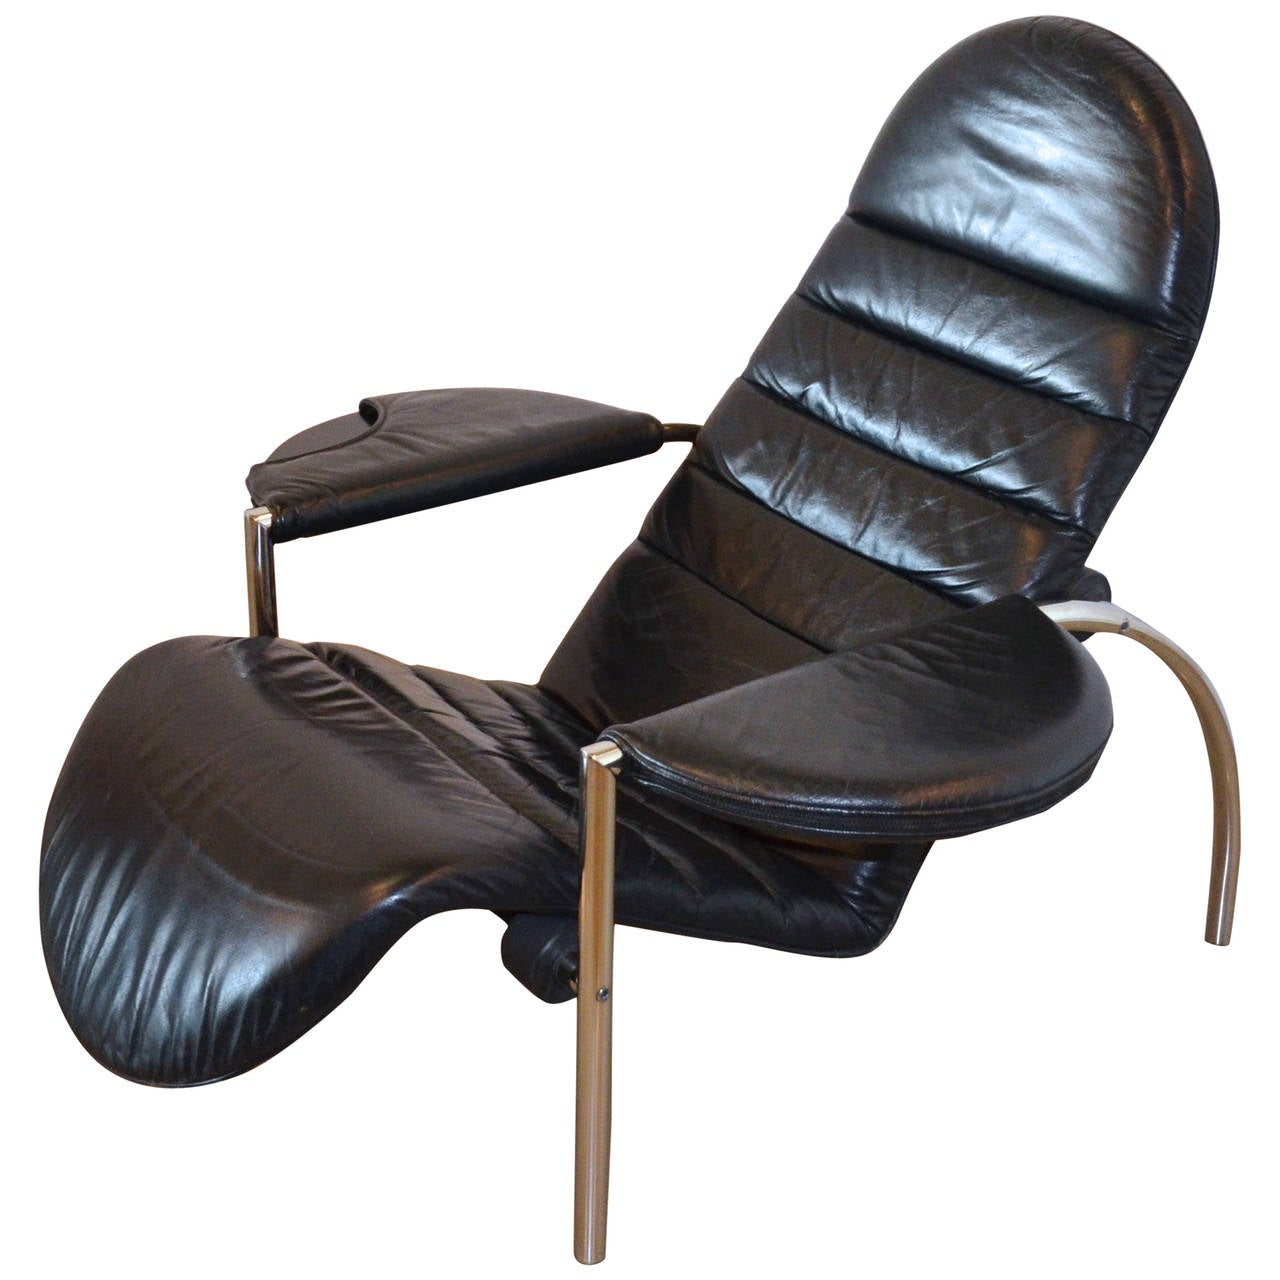 Moroso Italian Modern Reclining Chair circa 1980s at 1stdibs